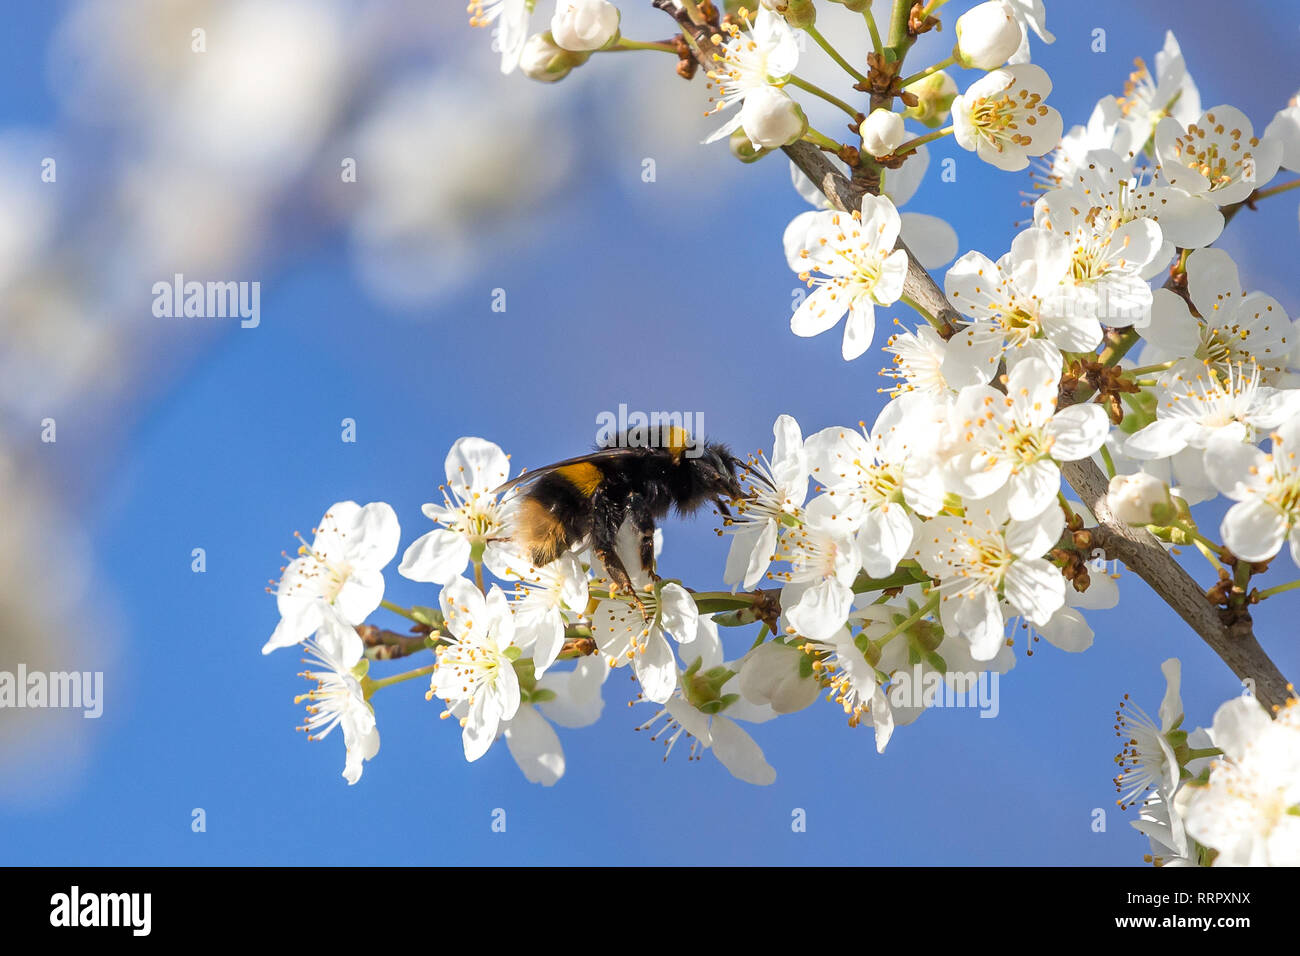 Kidderminster, UK. 26th February, 2019. UK weather: after yesterday's record-breaking February heatwave, the unseasonably warm weather continues today. With spring-like conditions in much of the UK today, there is confusion amongst the British wildlife as many of our bumblebees are out in force  basking in the glorious sunshine as they gather nectar from early blossom. Credit: Lee Hudson/Alamy Live News - Stock Image